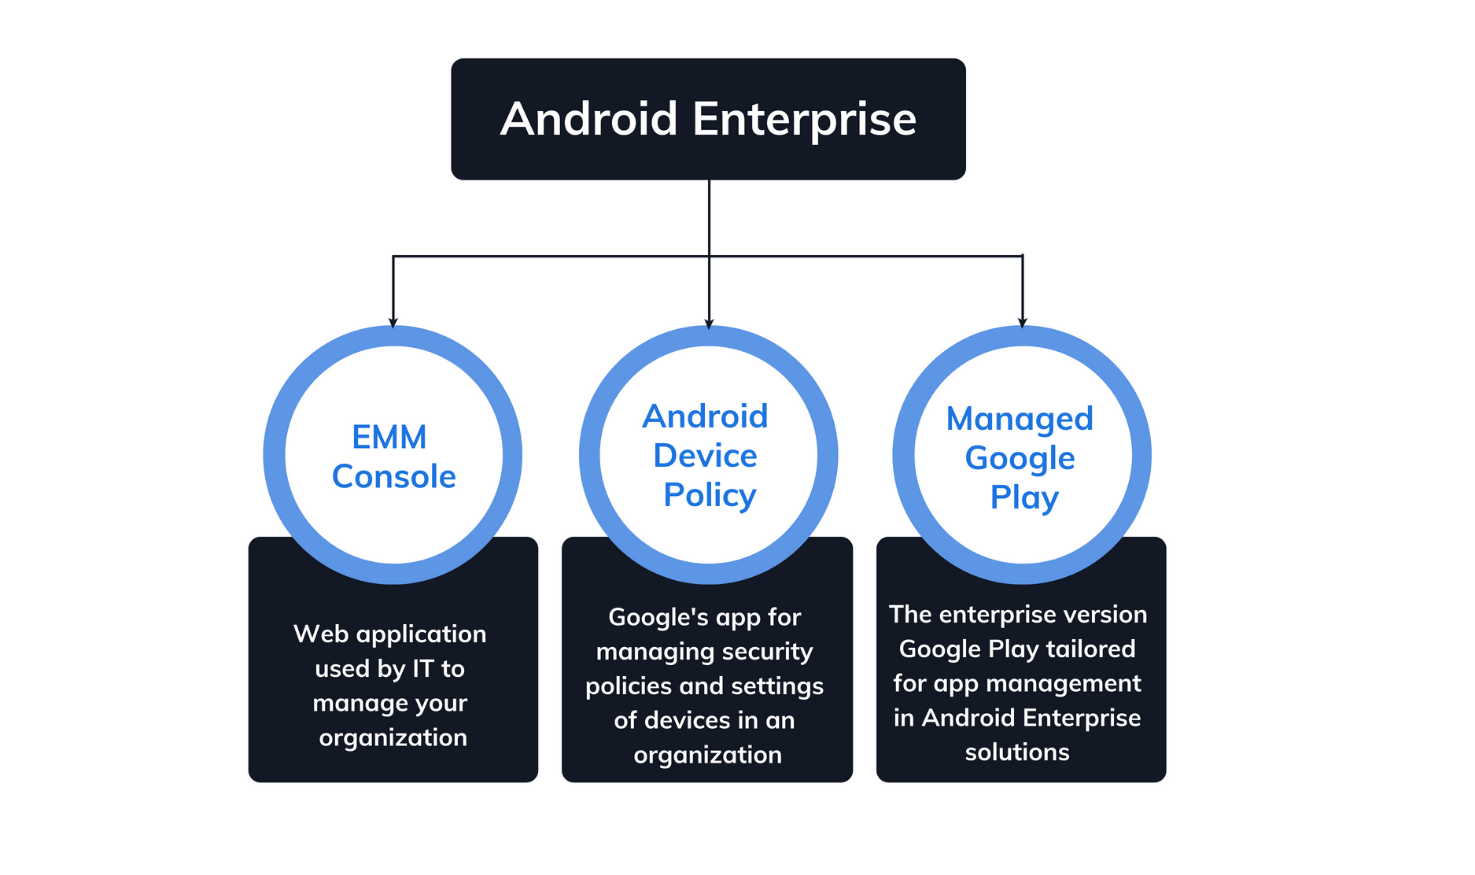 Components of Android Enterprise solution